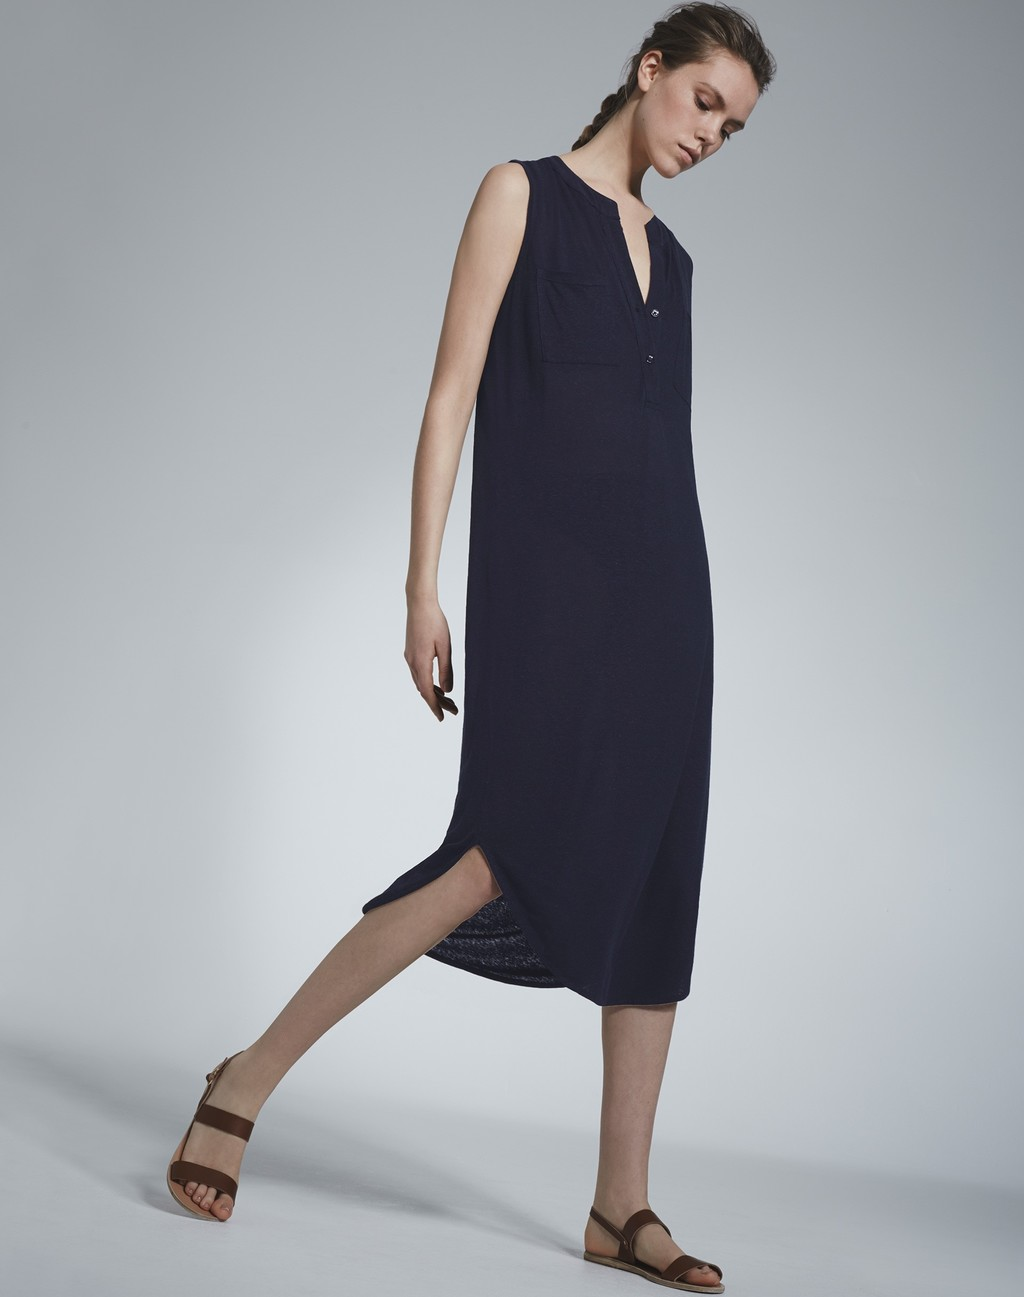 Linen Tunic Dress Navy - style: tunic; length: below the knee; neckline: v-neck; pattern: plain; sleeve style: sleeveless; predominant colour: navy; occasions: casual, creative work; fit: straight cut; fibres: linen - 100%; sleeve length: sleeveless; texture group: crepes; pattern type: fabric; season: s/s 2016; wardrobe: basic